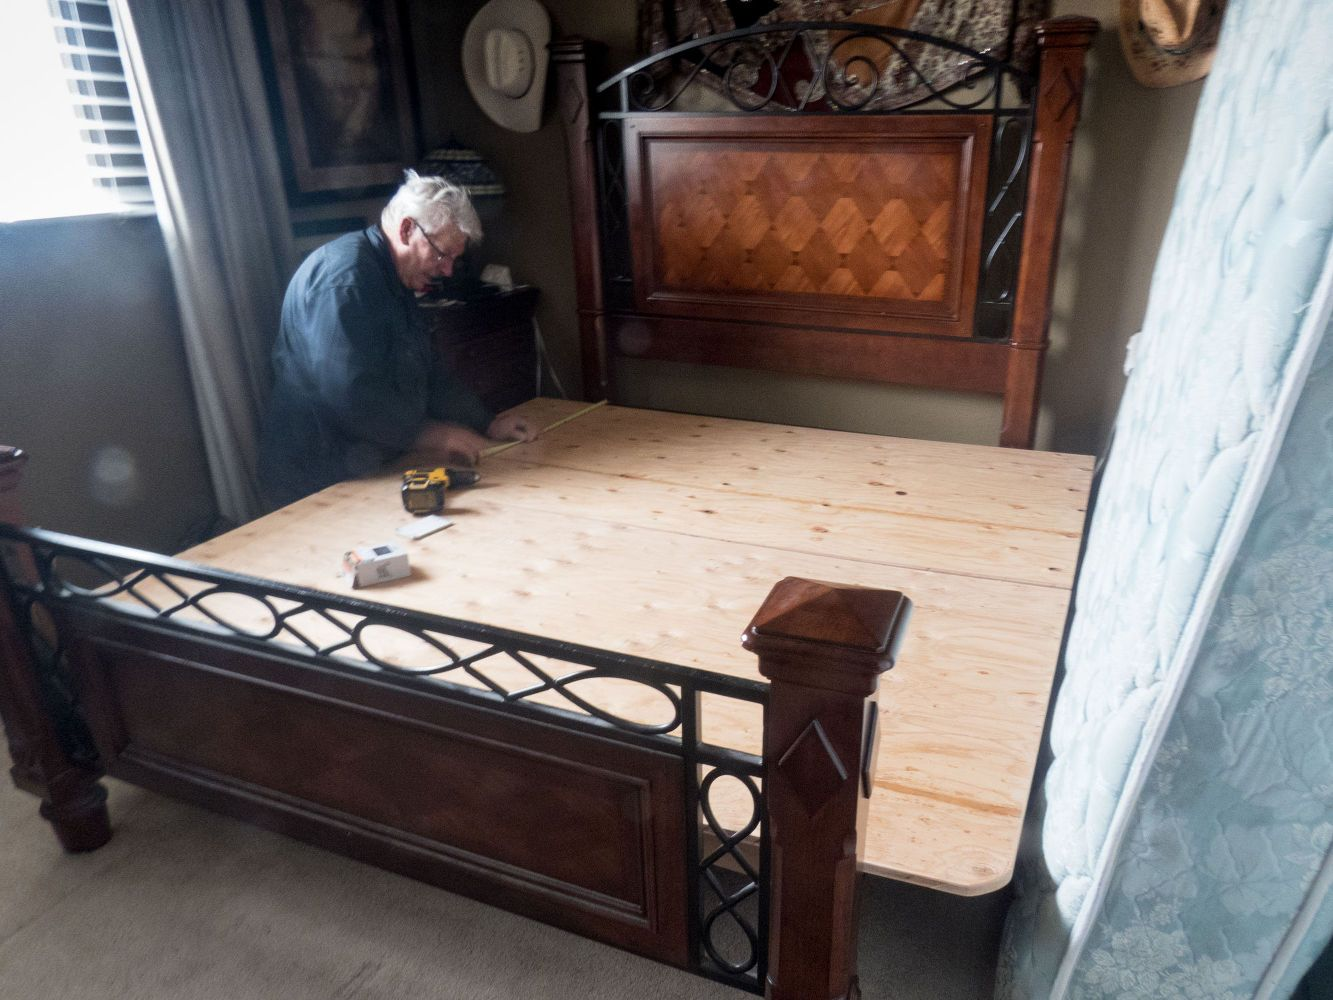 Turn Your Queen Sized Mattress Into A King Sized Bed Queen Mattress Size Queen Size Bed Frames King Bed Frame Queen size bed and frame